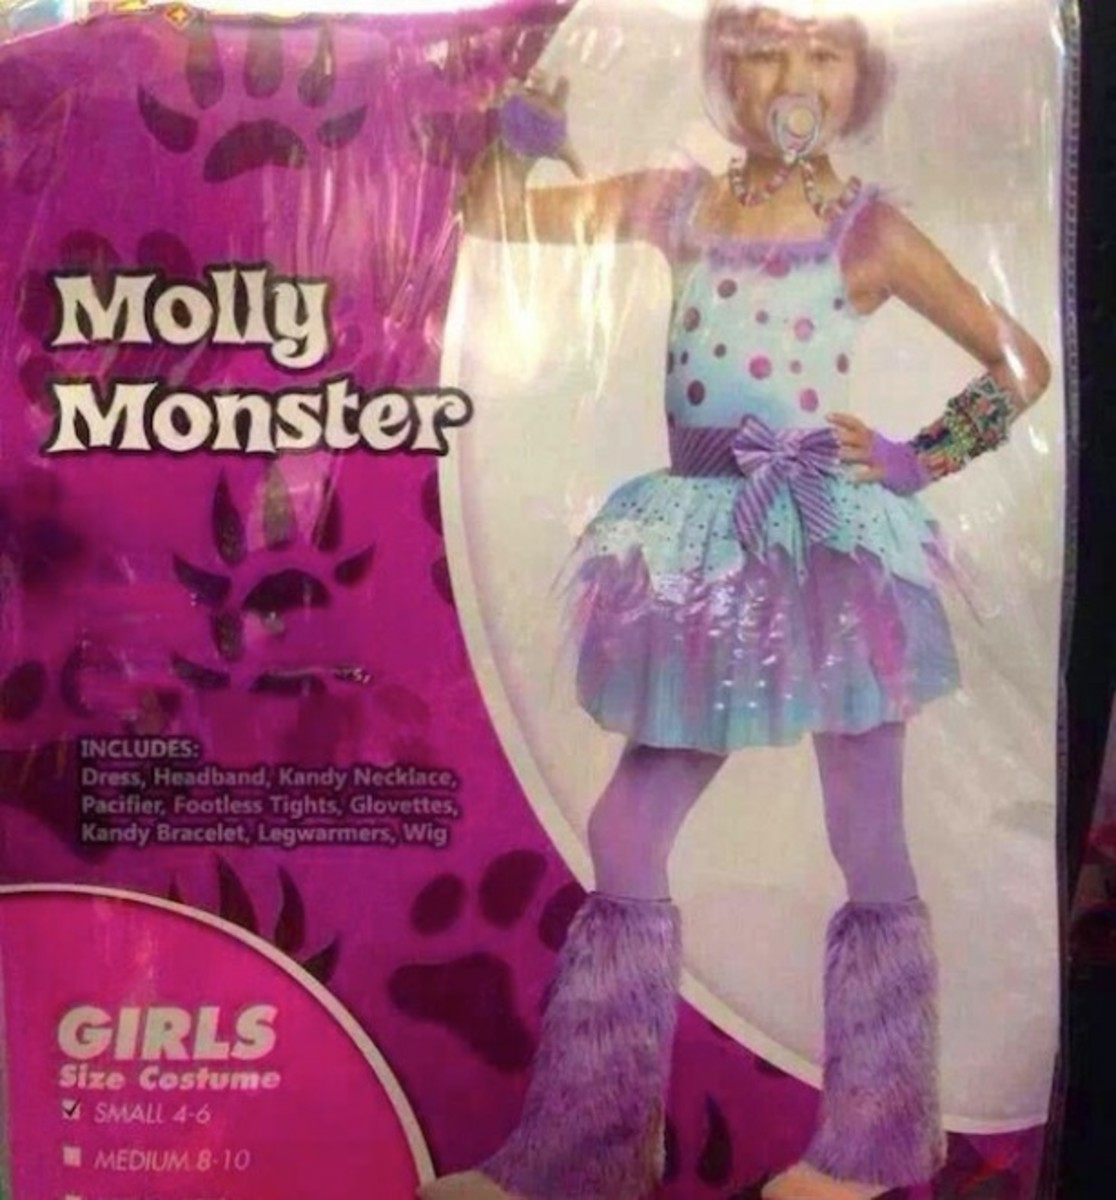 EDM Culture: Attention Everyone! We Finally Found Molly!